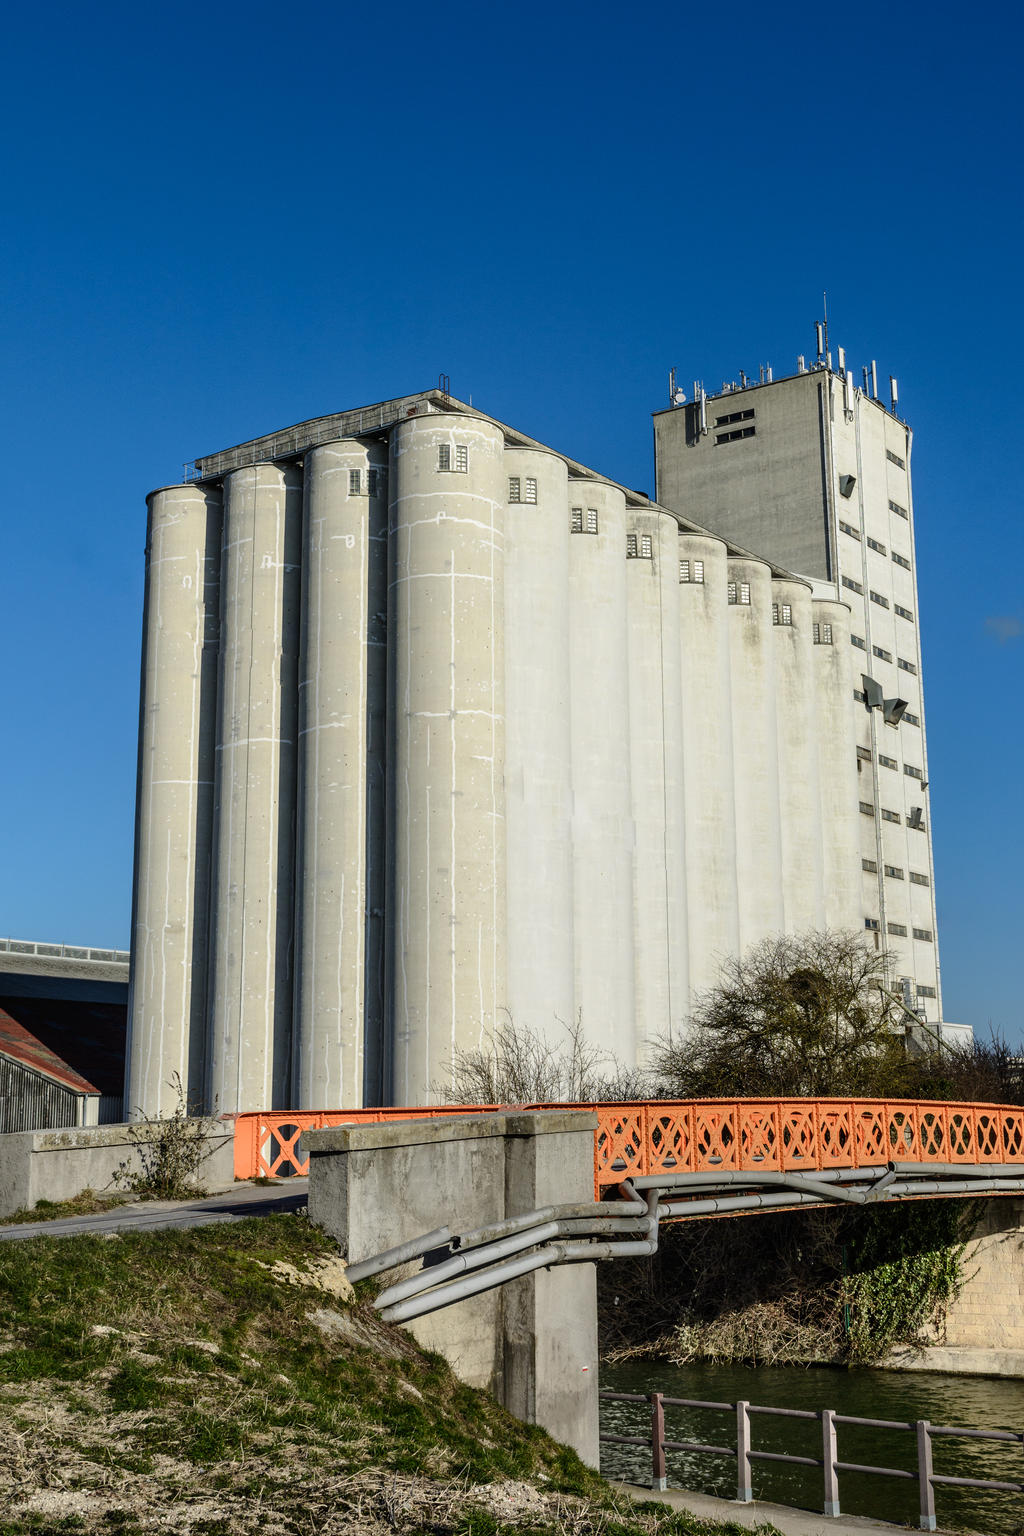 17 Fevrier : Silo agricole by InterludePhoto